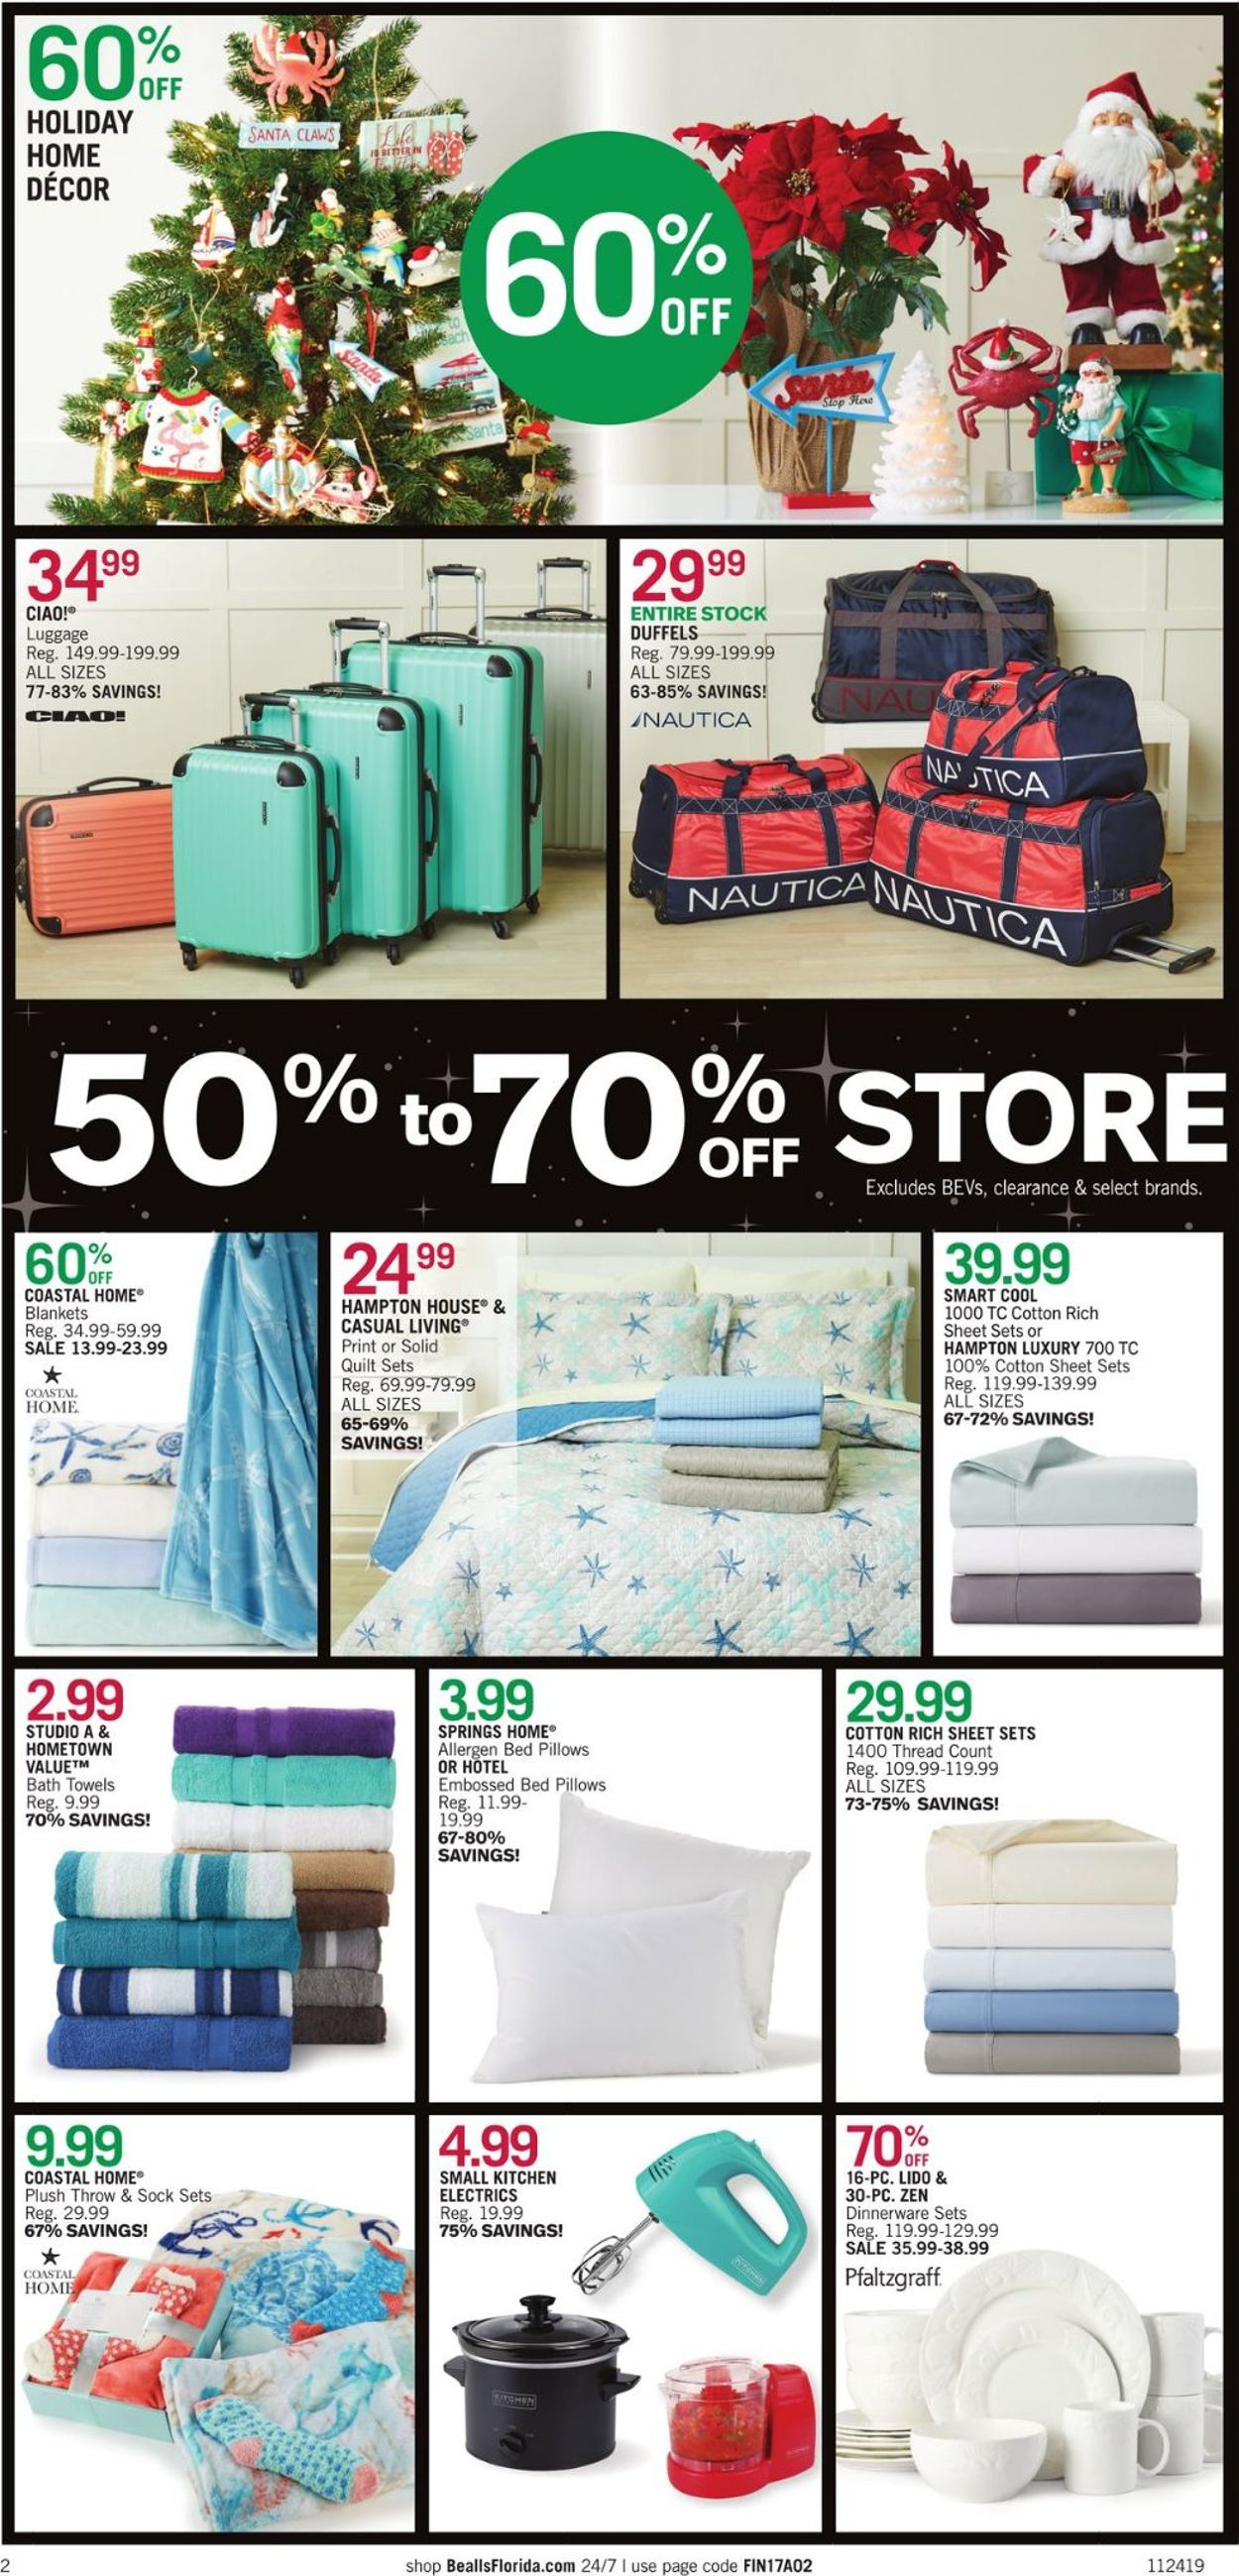 Catalogue Bealls Florida - Black Friday Ad 2019 from 11/24/2019